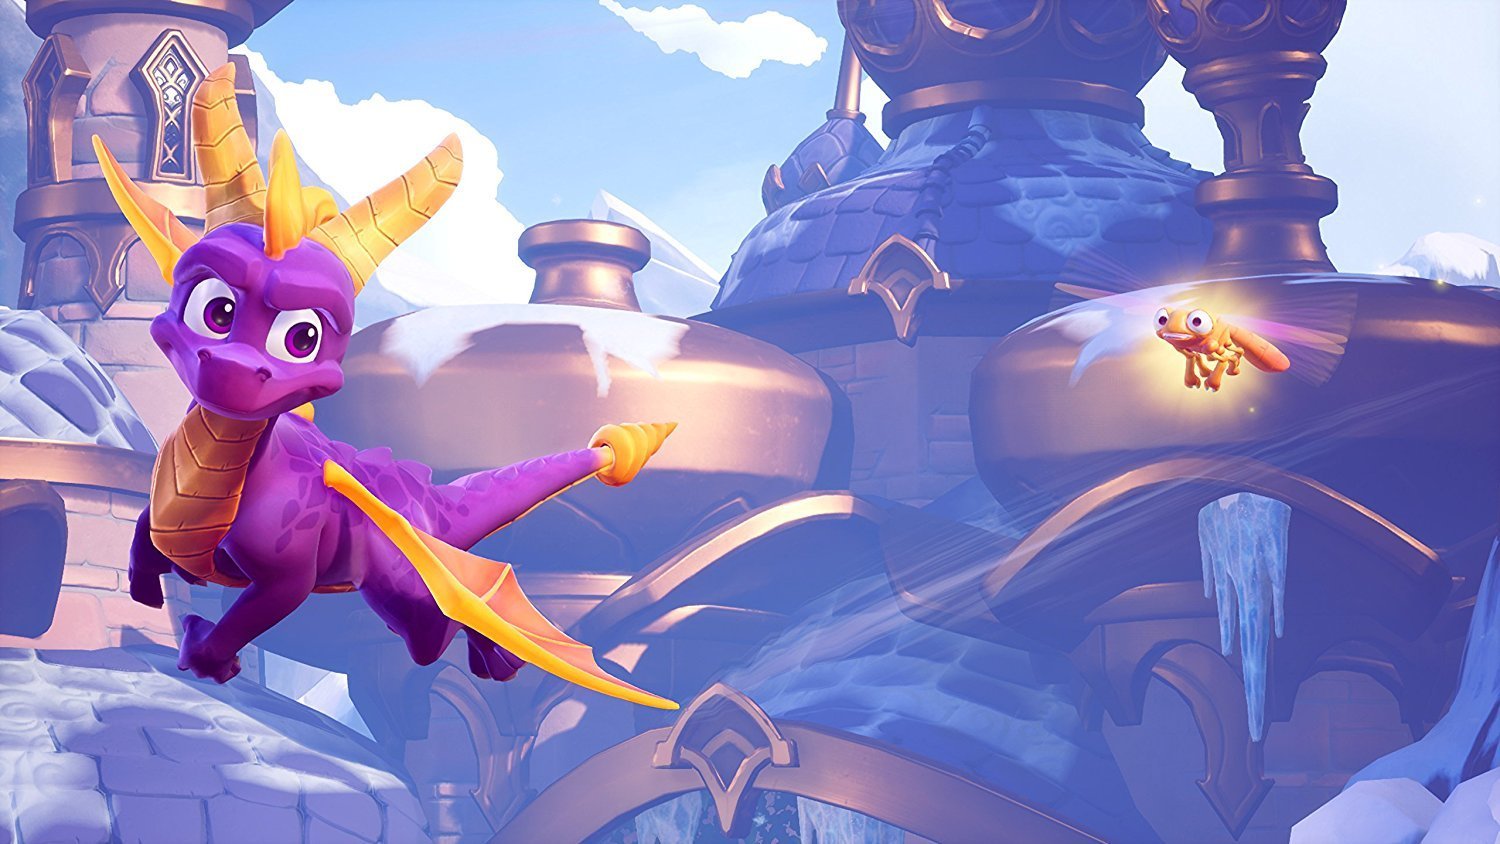 Rumoured: Spyro the Dragon Could Be Coming to Apple TV+